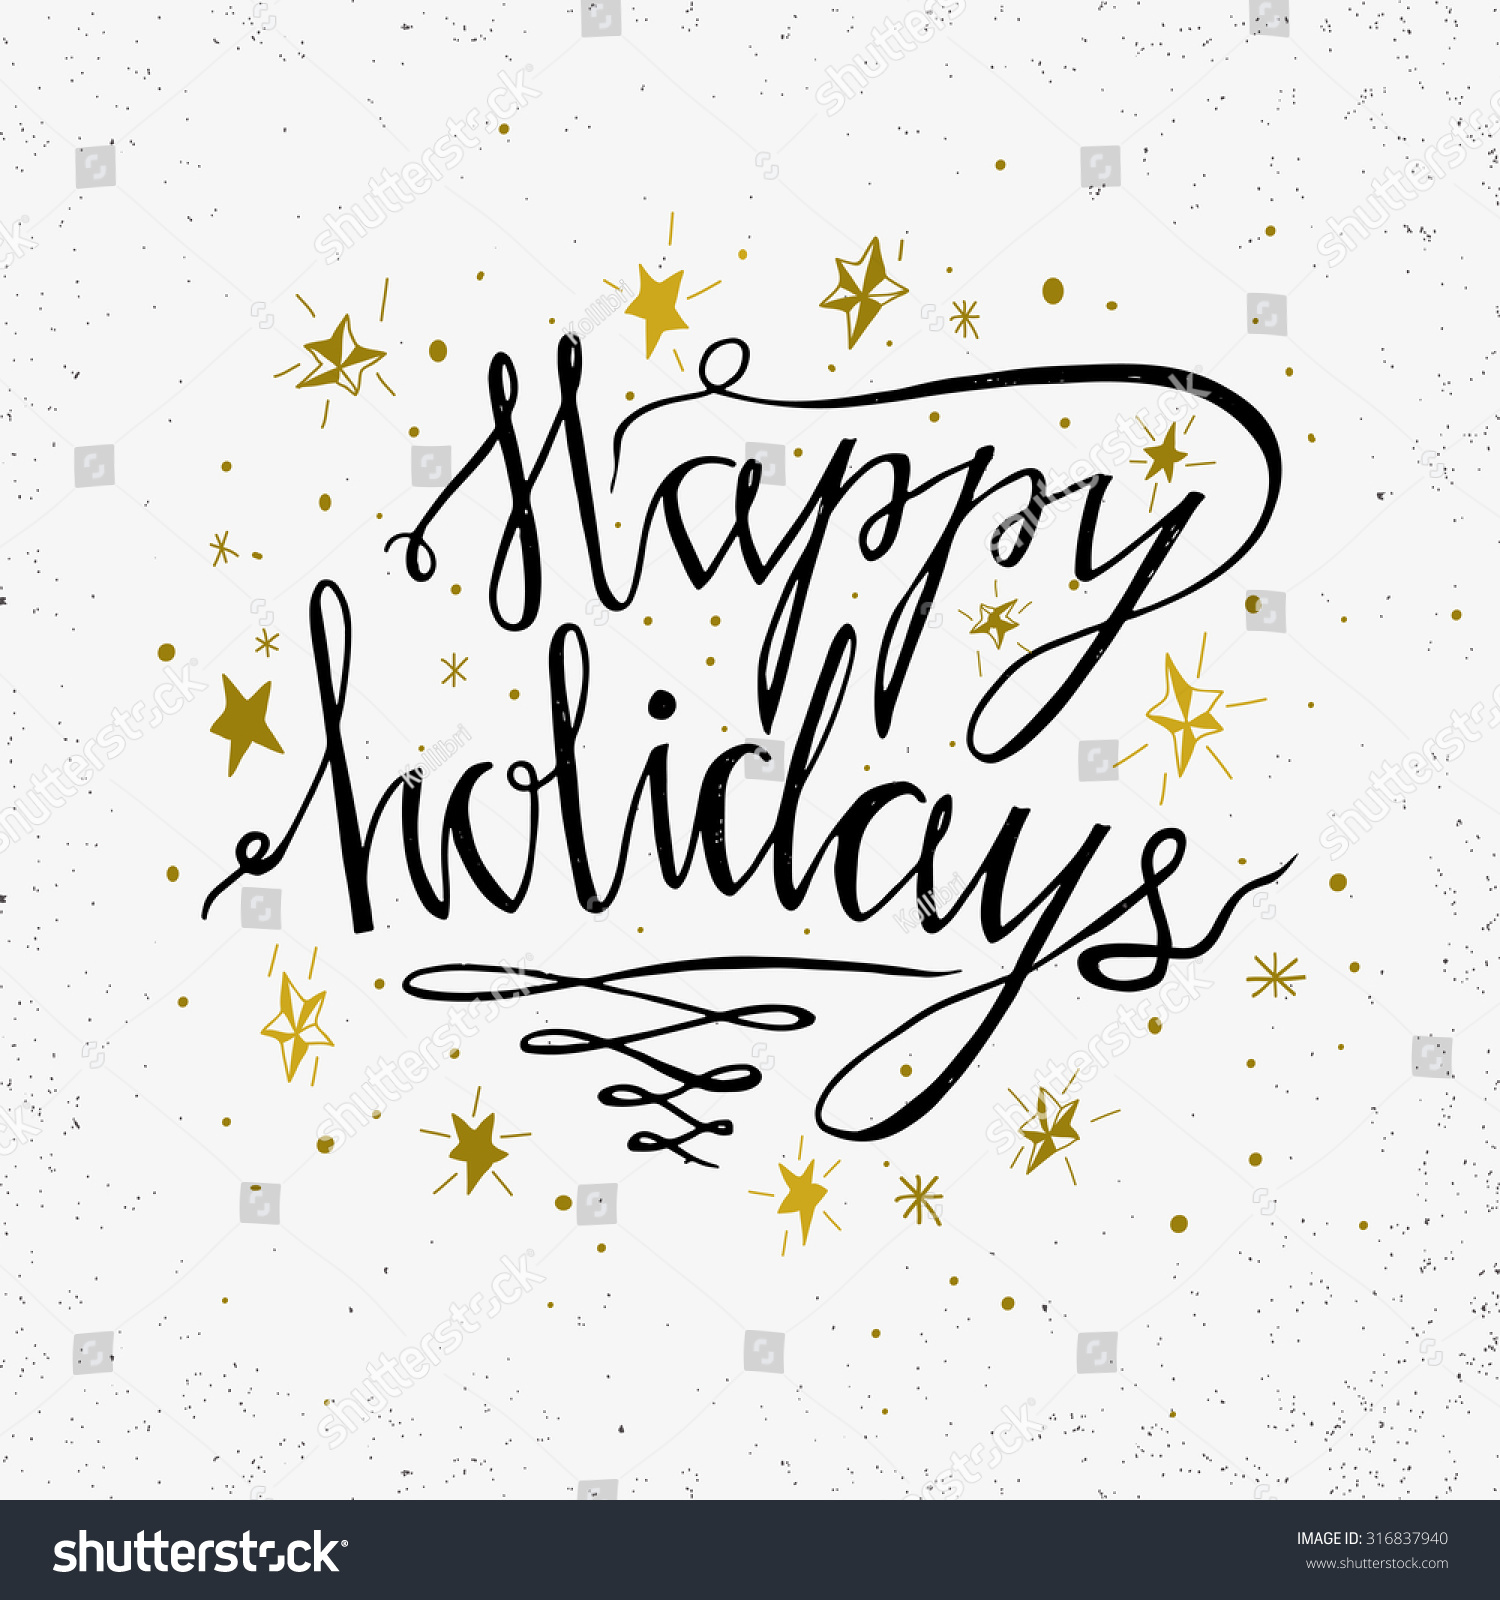 Happy Holidays Inspiration: Hand Drawn Typography Poster Happy Holidays Stock Vector